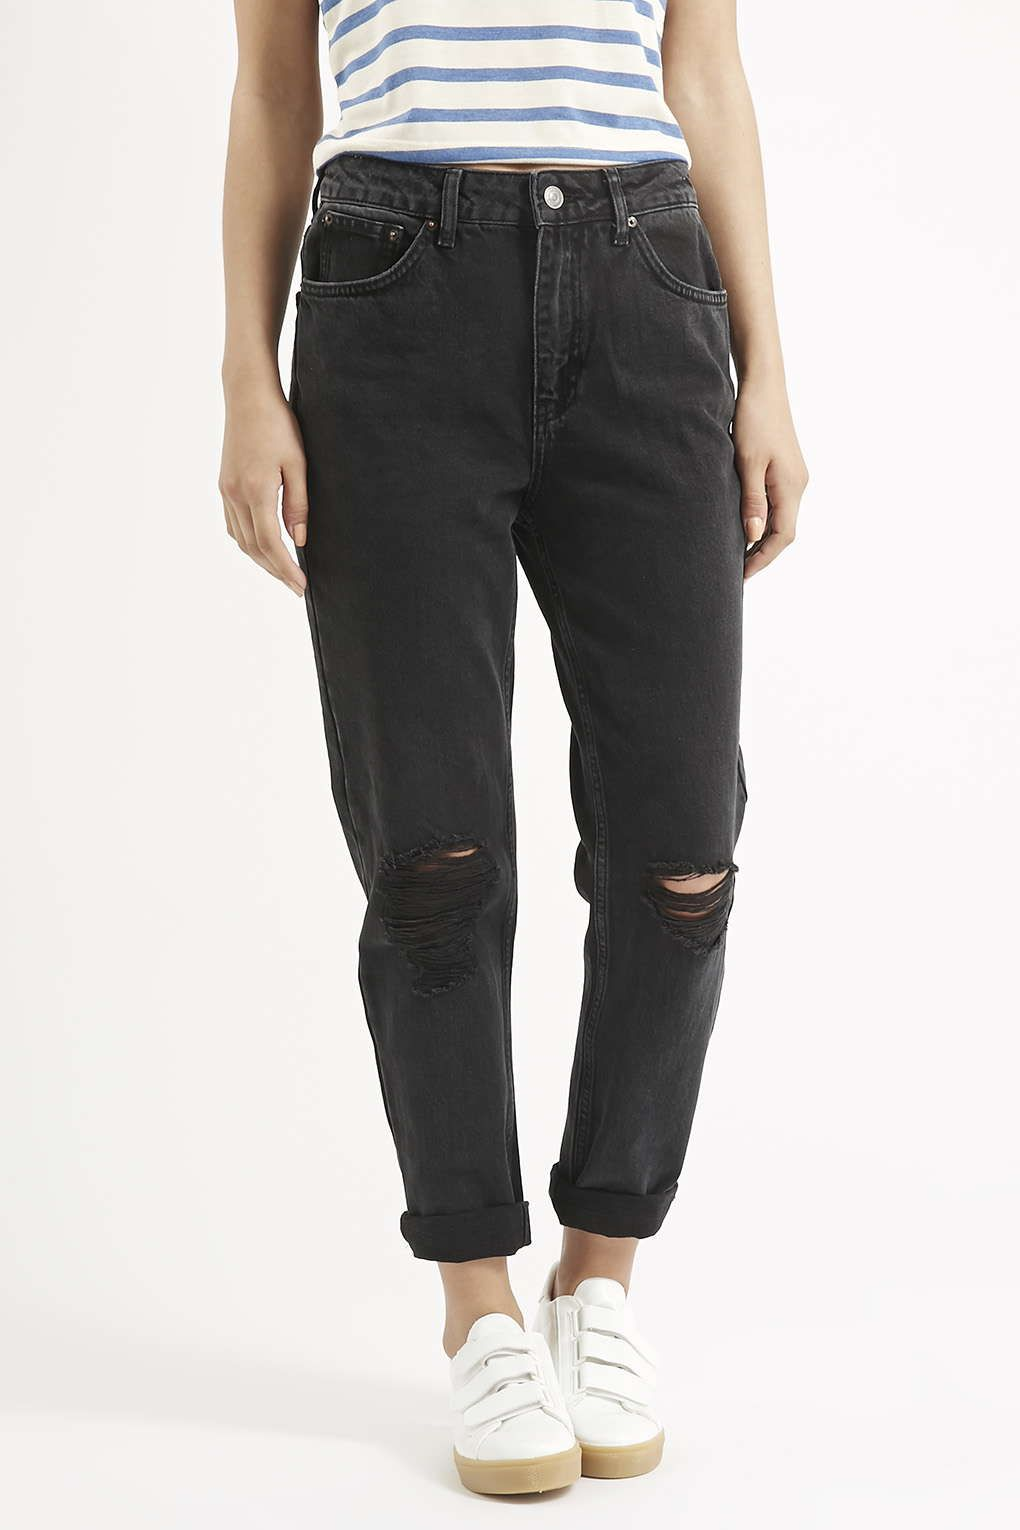 a1969a3917e4 Photo 2 of MOTO Washed Black Ripped Mom Jeans